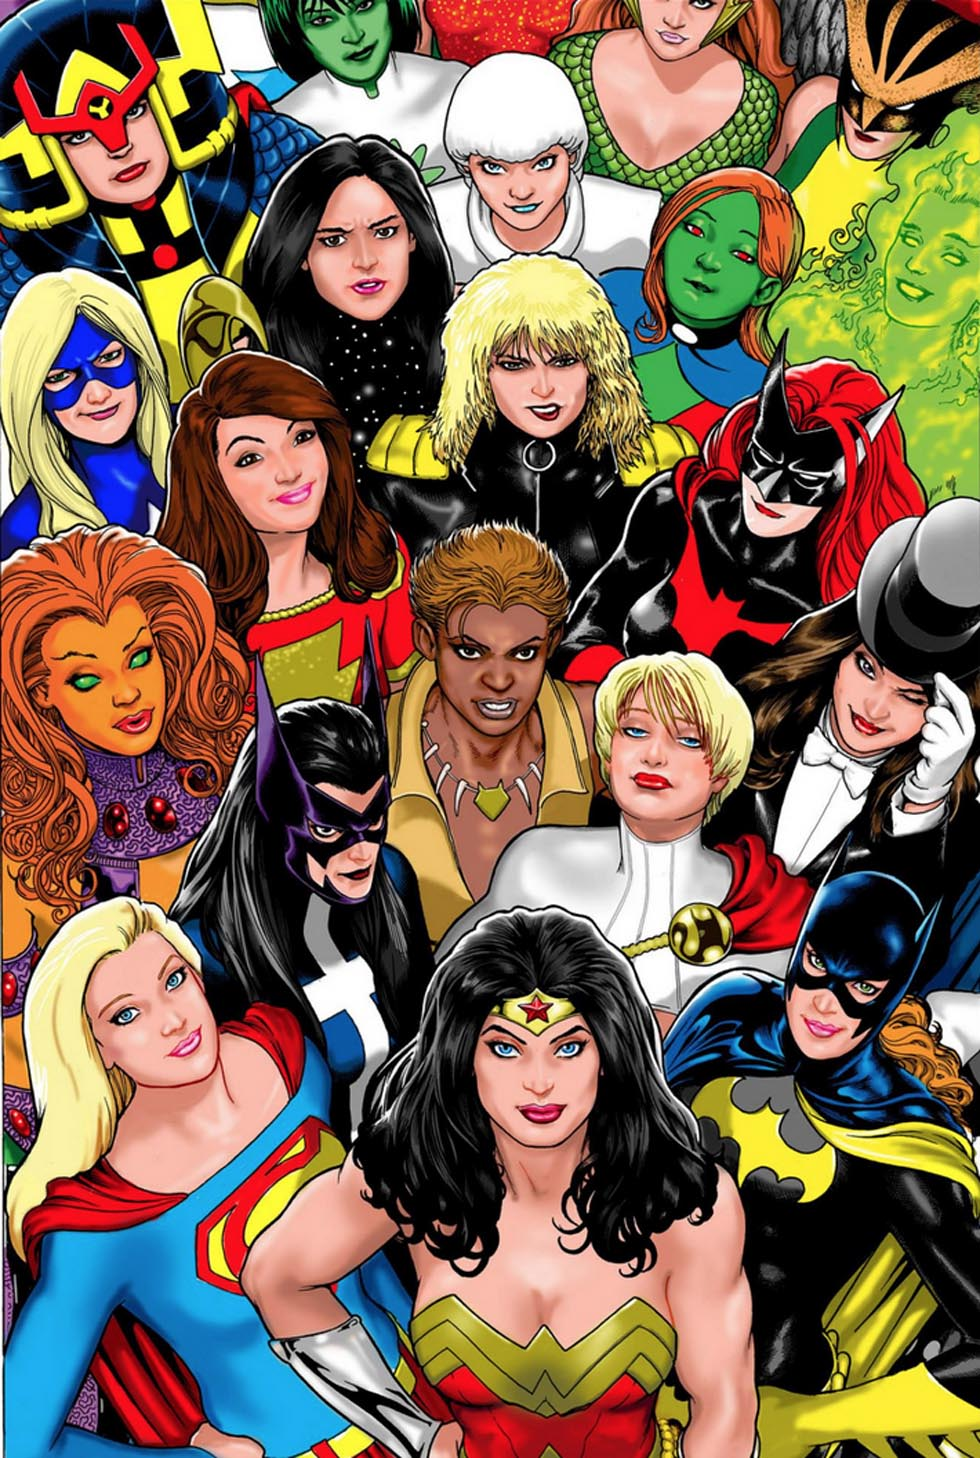 POPULAR FEMALE COMIC BOOK CHARACTERS FROM MARVEL AND DC - Comic Book and  Movie Reviews